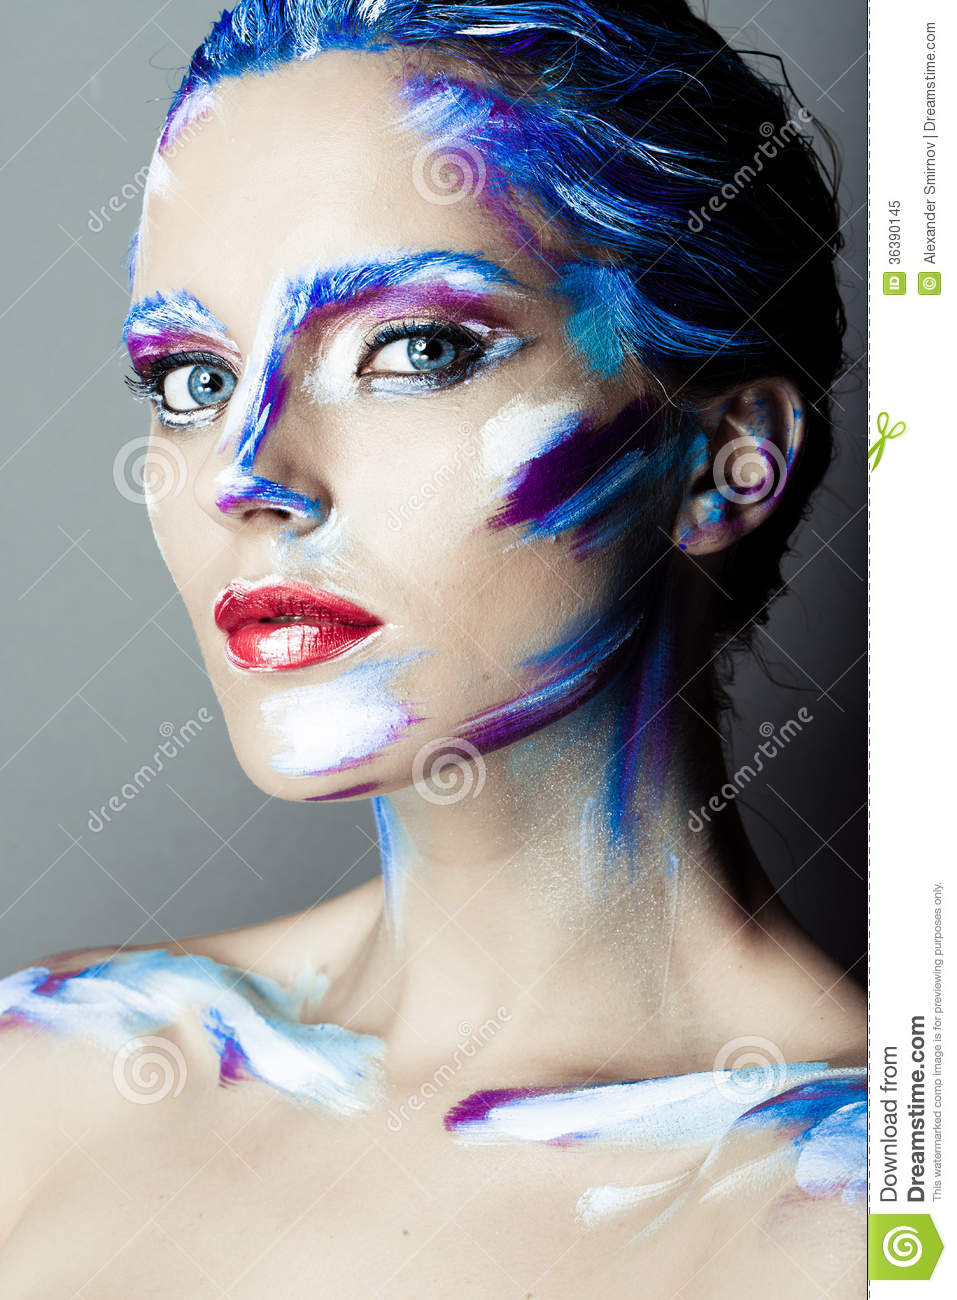 Creative Art Makeup Of A Young Girl With Blue Eyes Stock